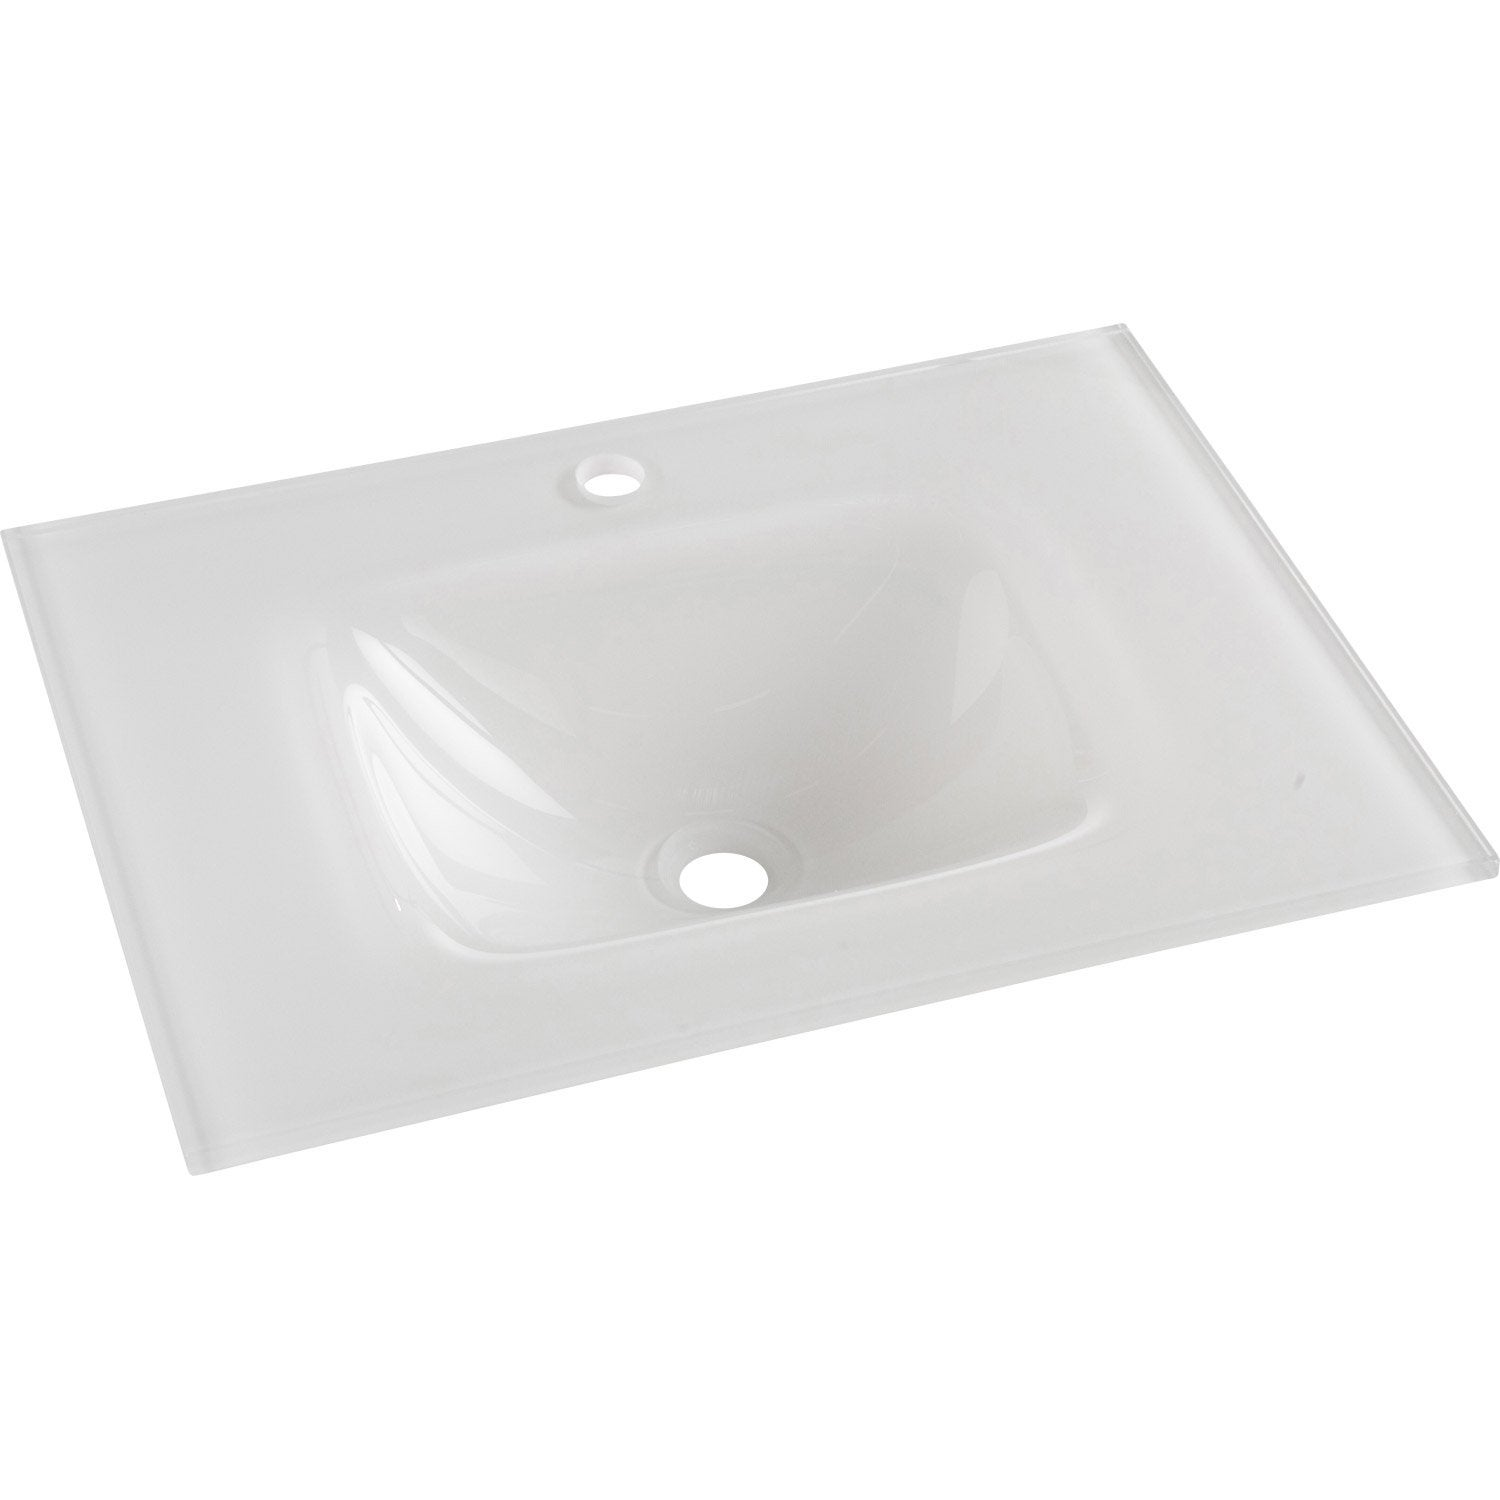 Plan vasque opale verre tremp 61 cm leroy merlin - Verre trempe leroy merlin ...